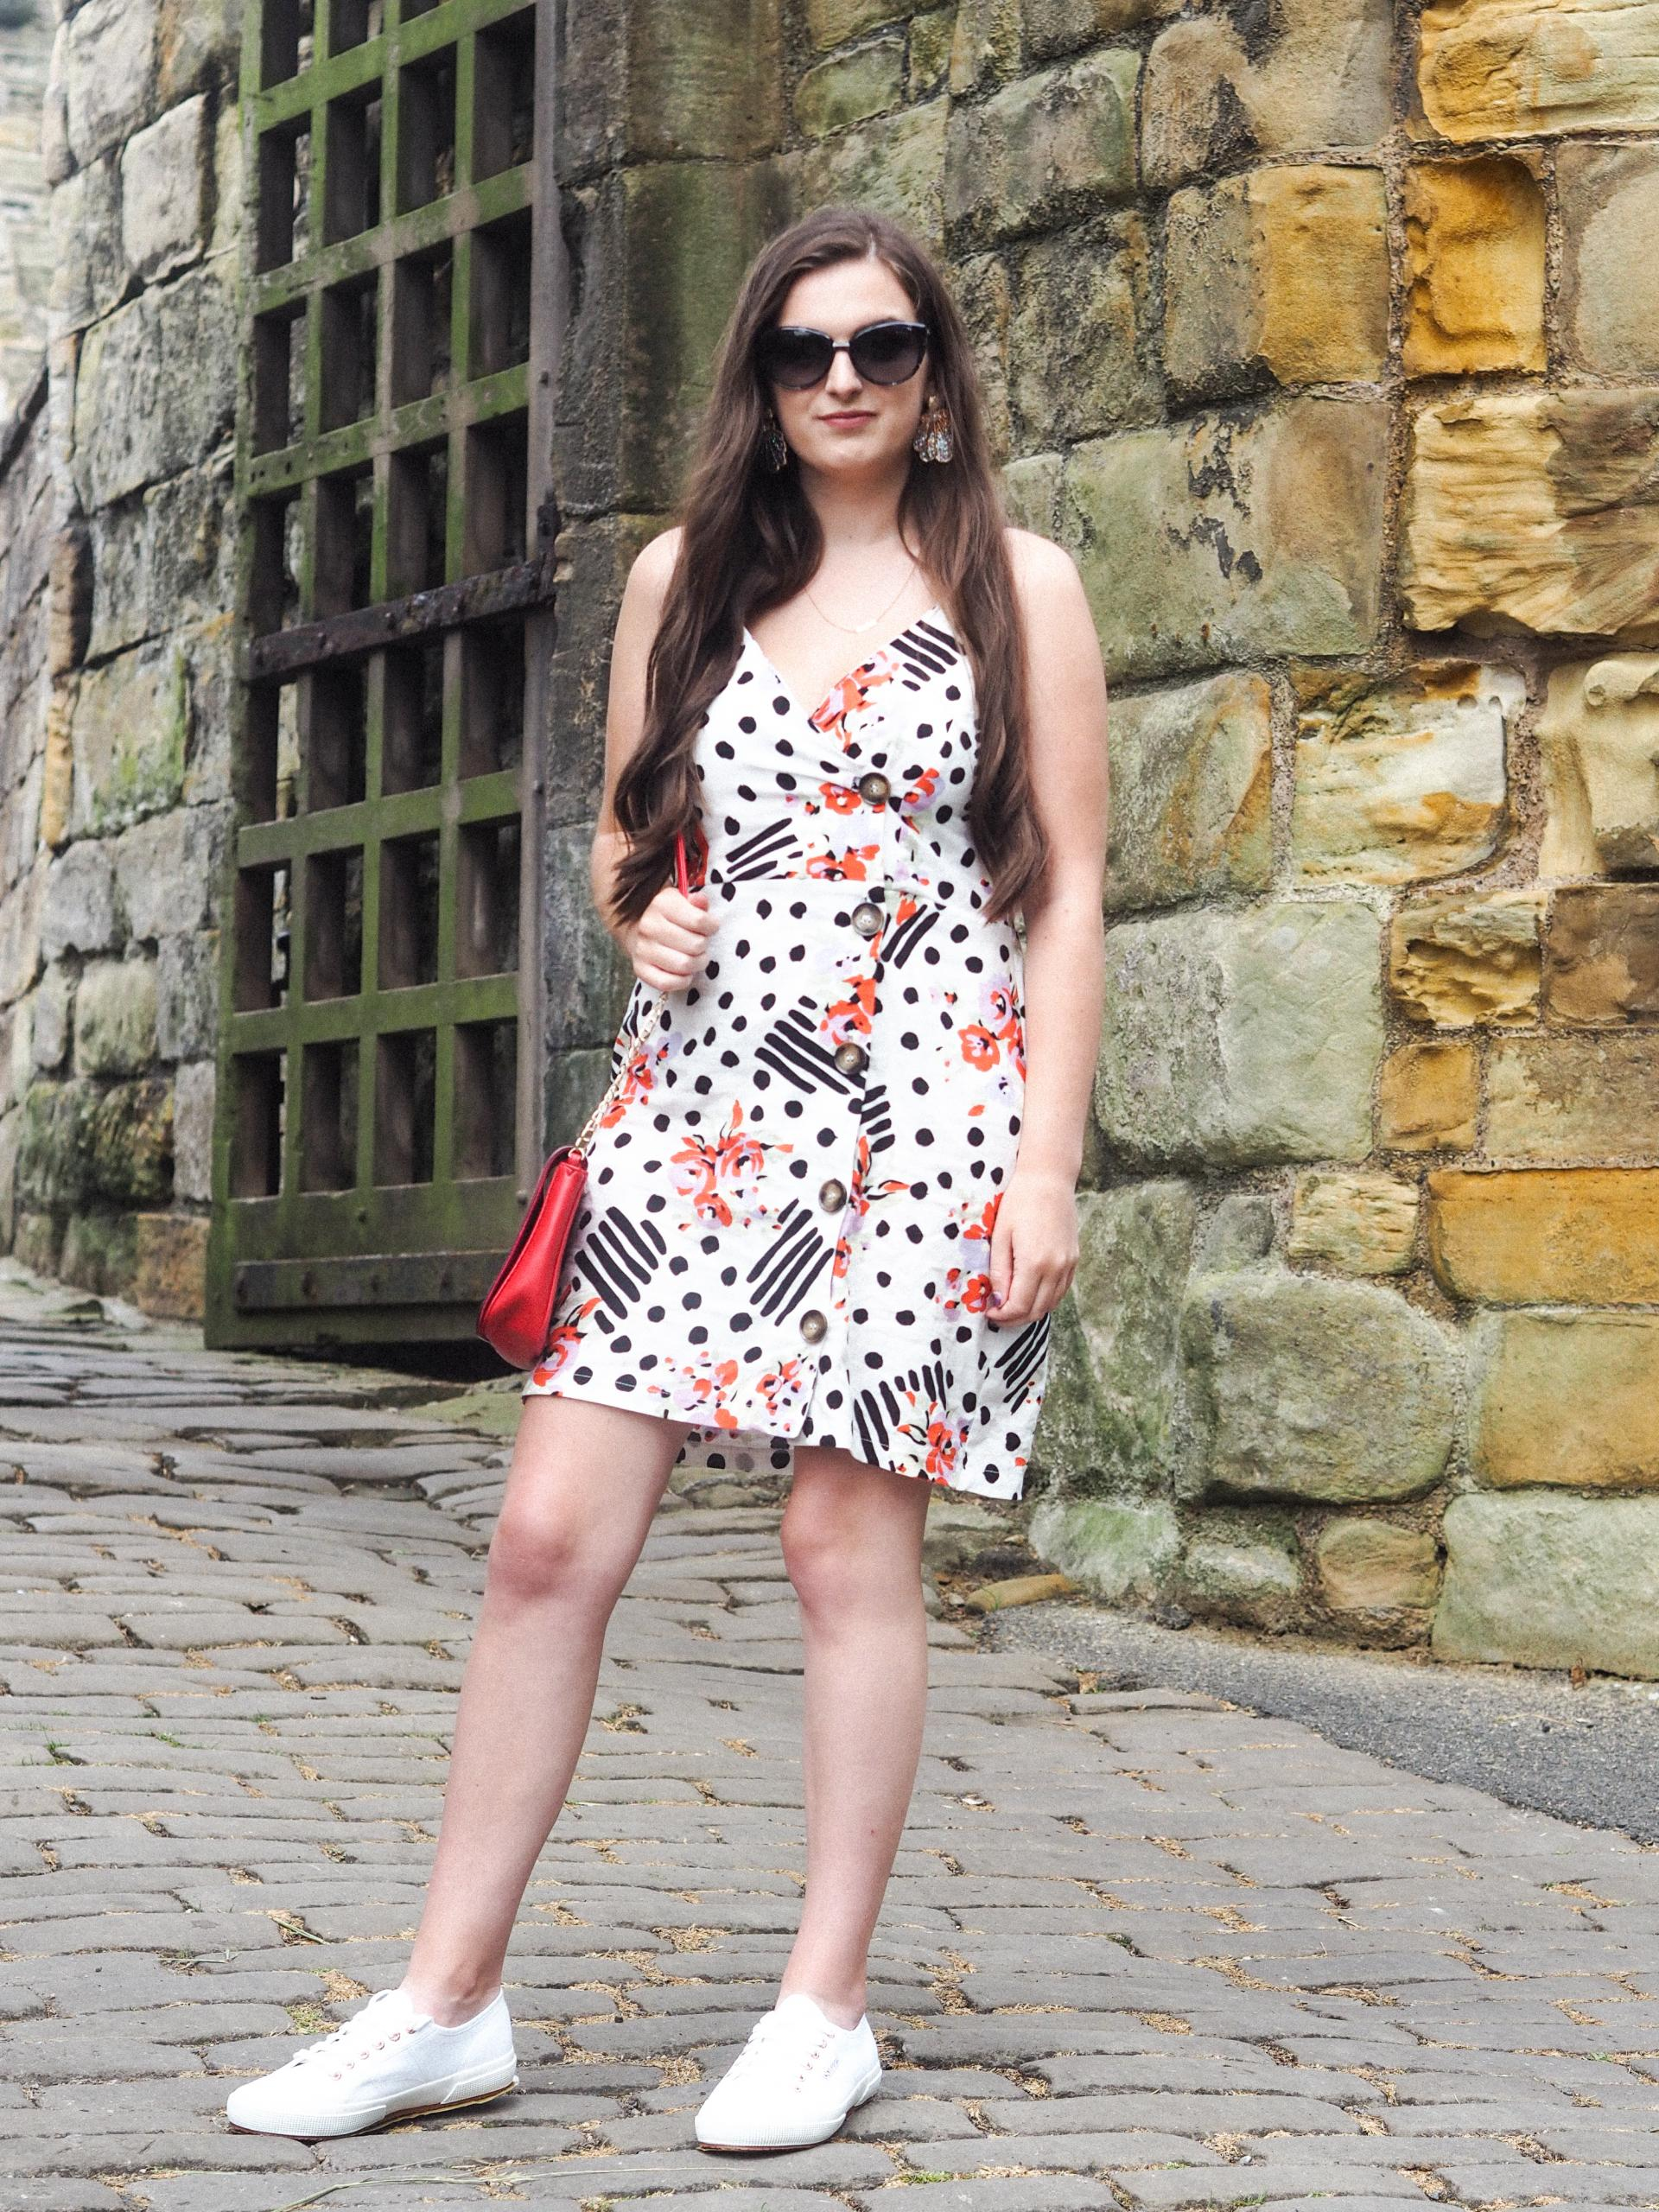 Pretty Polka Dot Prints at Primark - Rachel Nicole UK Blogger